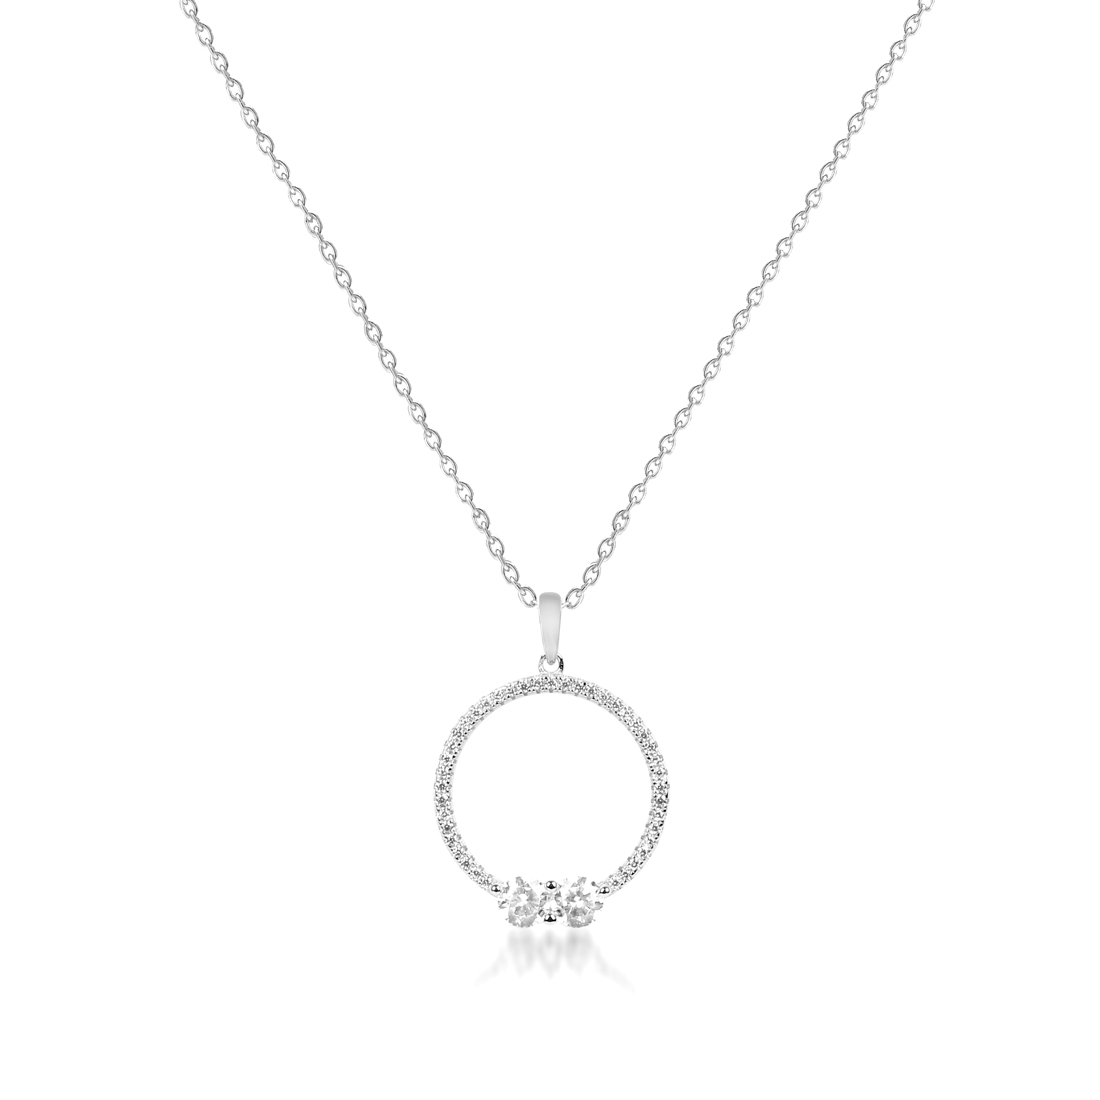 The Present and The Future Khailo Silver Necklace - High Street Jewelry